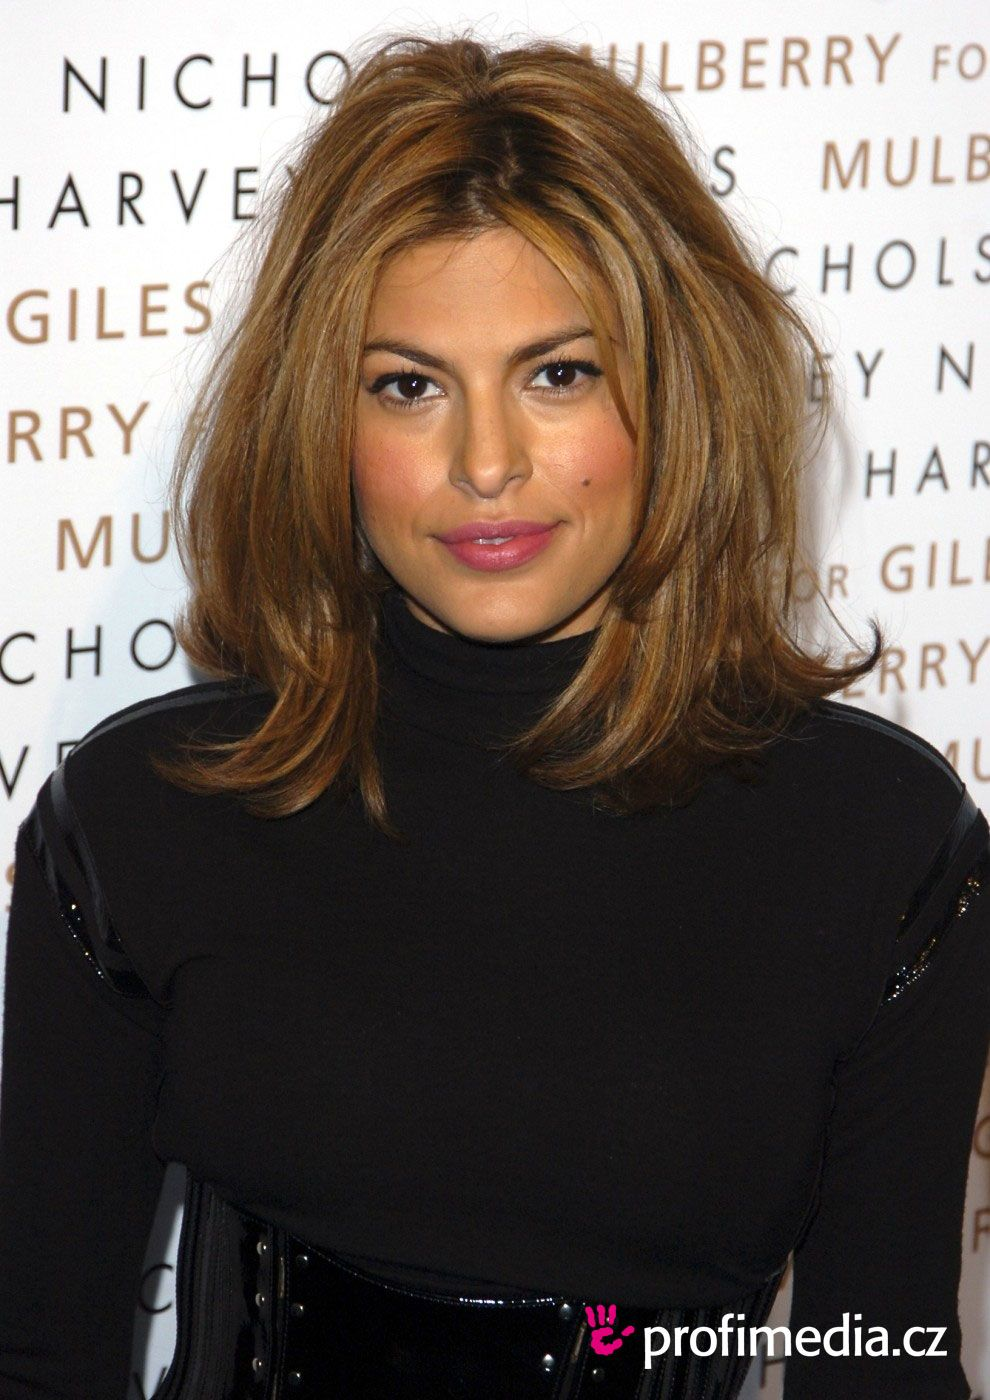 eva mendes kinopoiskeva mendes ryan gosling, eva mendes 2016, eva mendes 2017, eva mendes films, eva mendes style, eva mendes daughters, eva menda beauty club гомель, eva mendes фильмы, eva mendes calvin klein, eva mendes ryan gosling 2017, eva mendes husband, eva mendes gosling, eva mendes collection, eva mendes kinopoisk, eva mendes photoshoots, eva mendes wallpaper, eva mendes imdb, eva mendes emma stone, eva mendes net worth, eva mendes ryan